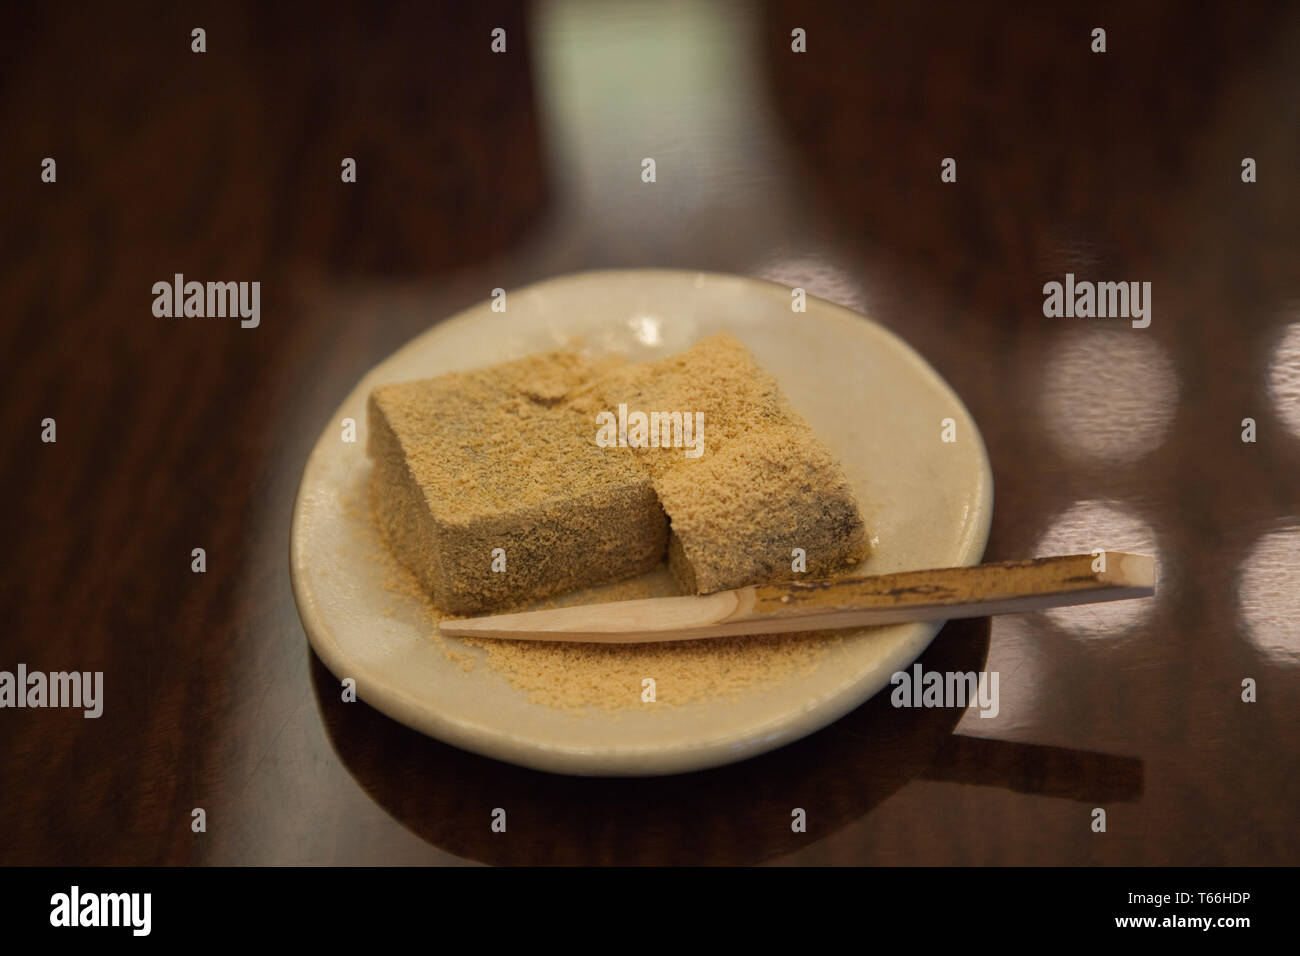 Yokan Kinako - jellied red bean paste dusted with soybean flour - Stock Image